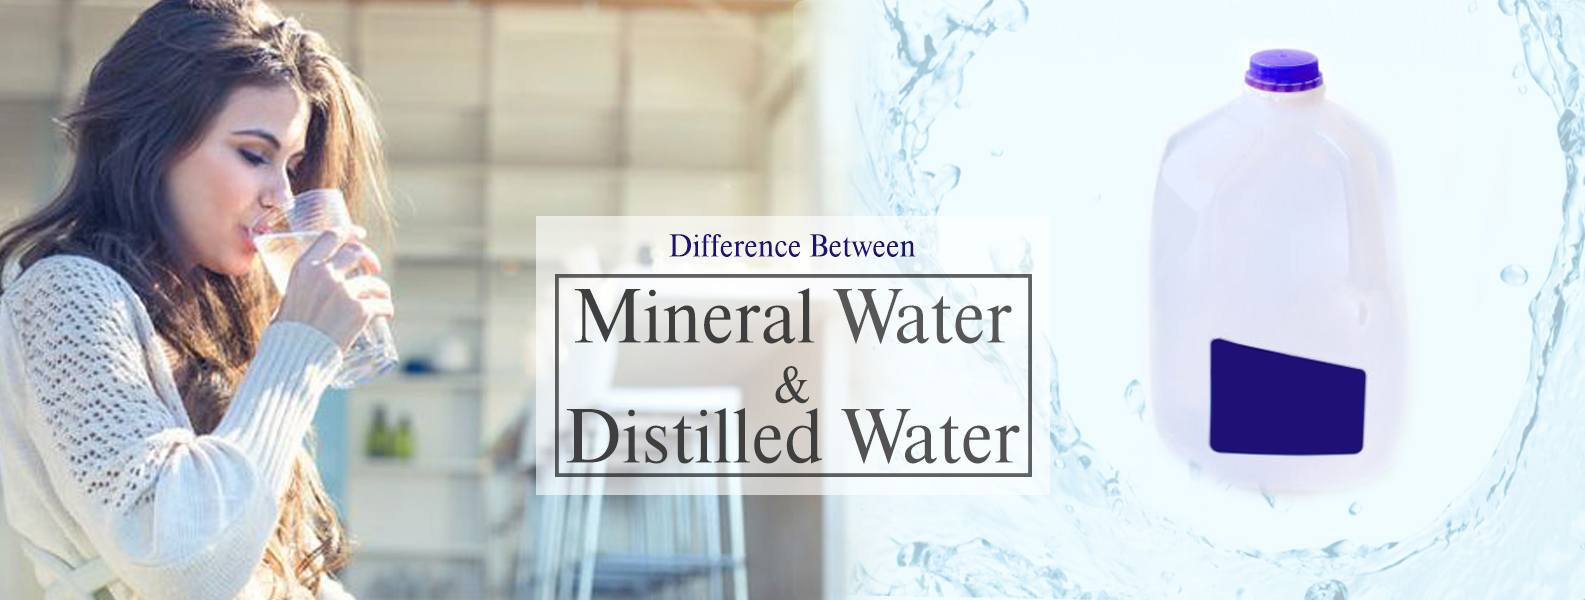 Difference between mineral water and distilled water